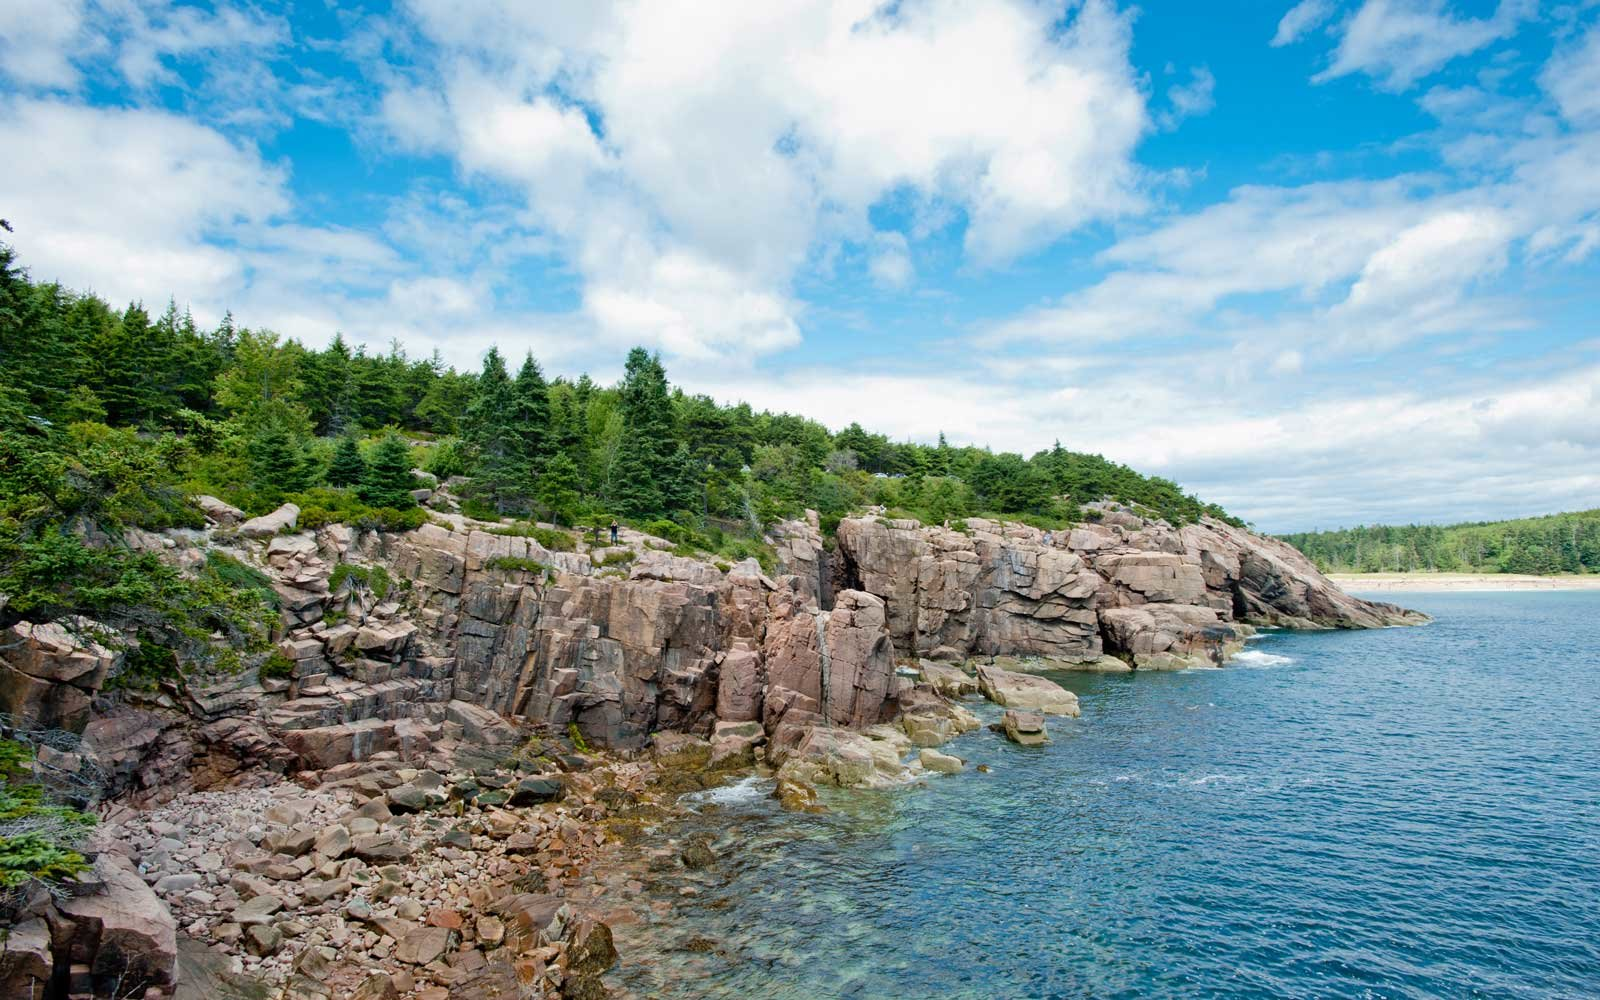 Rock Cliffs by the ocean at Acadia National Park